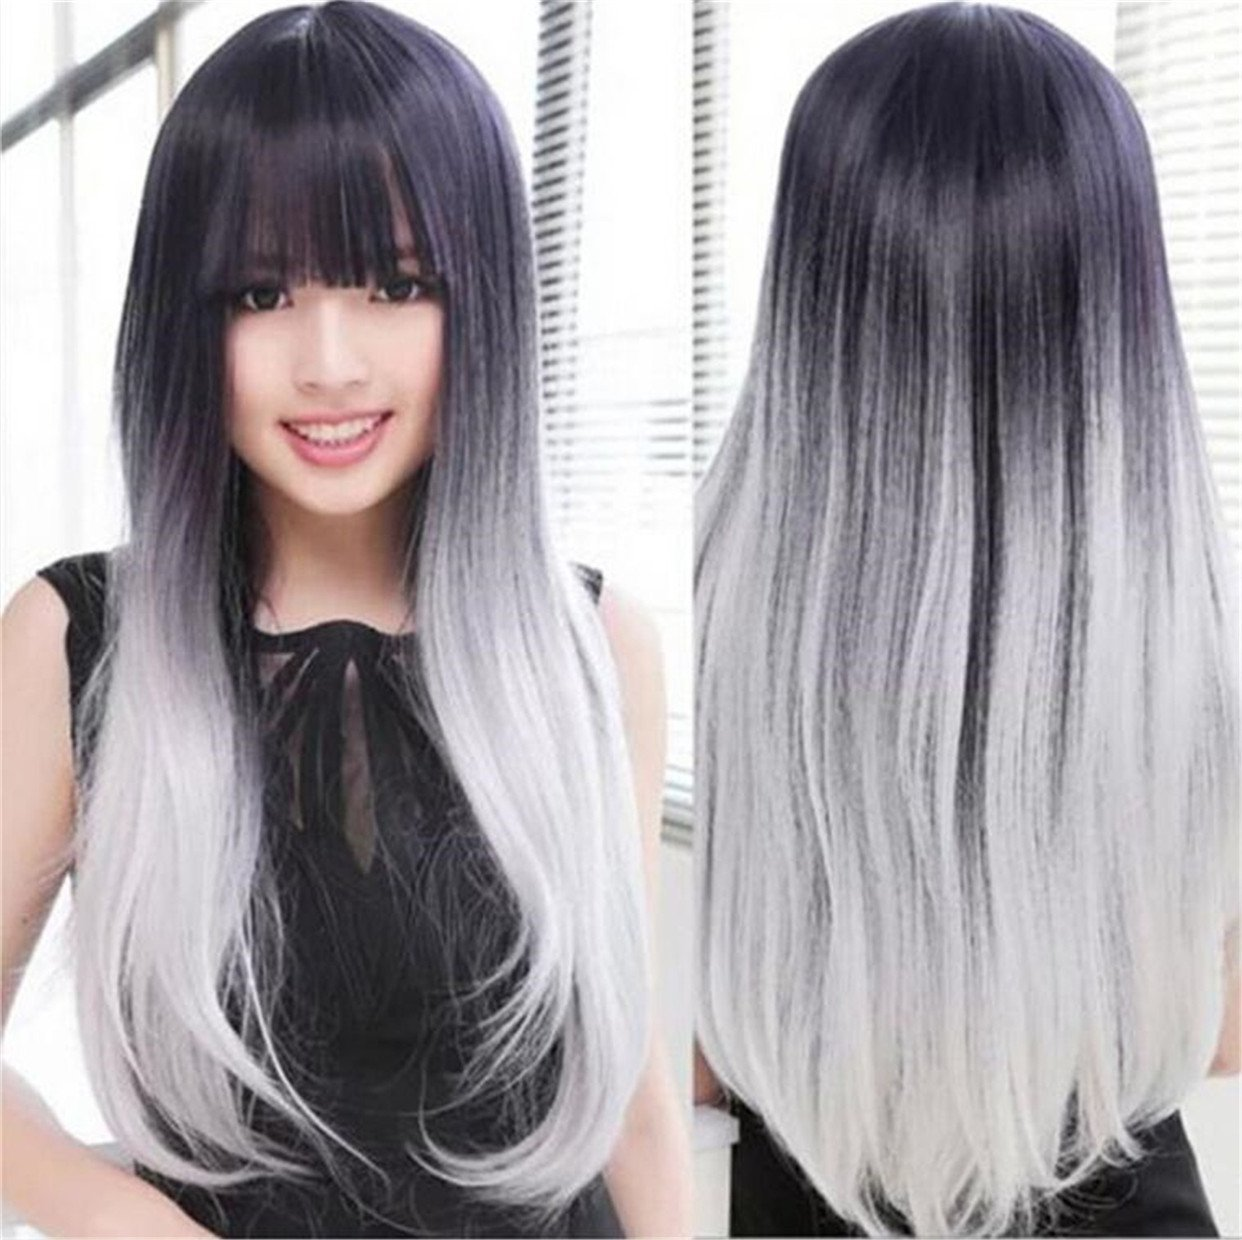 Get Quotations · Futuretrend®most Popular Cheap Ombre Wig Womens Lady s  Long Stright Wigs Two Tone Black to 3263815a5